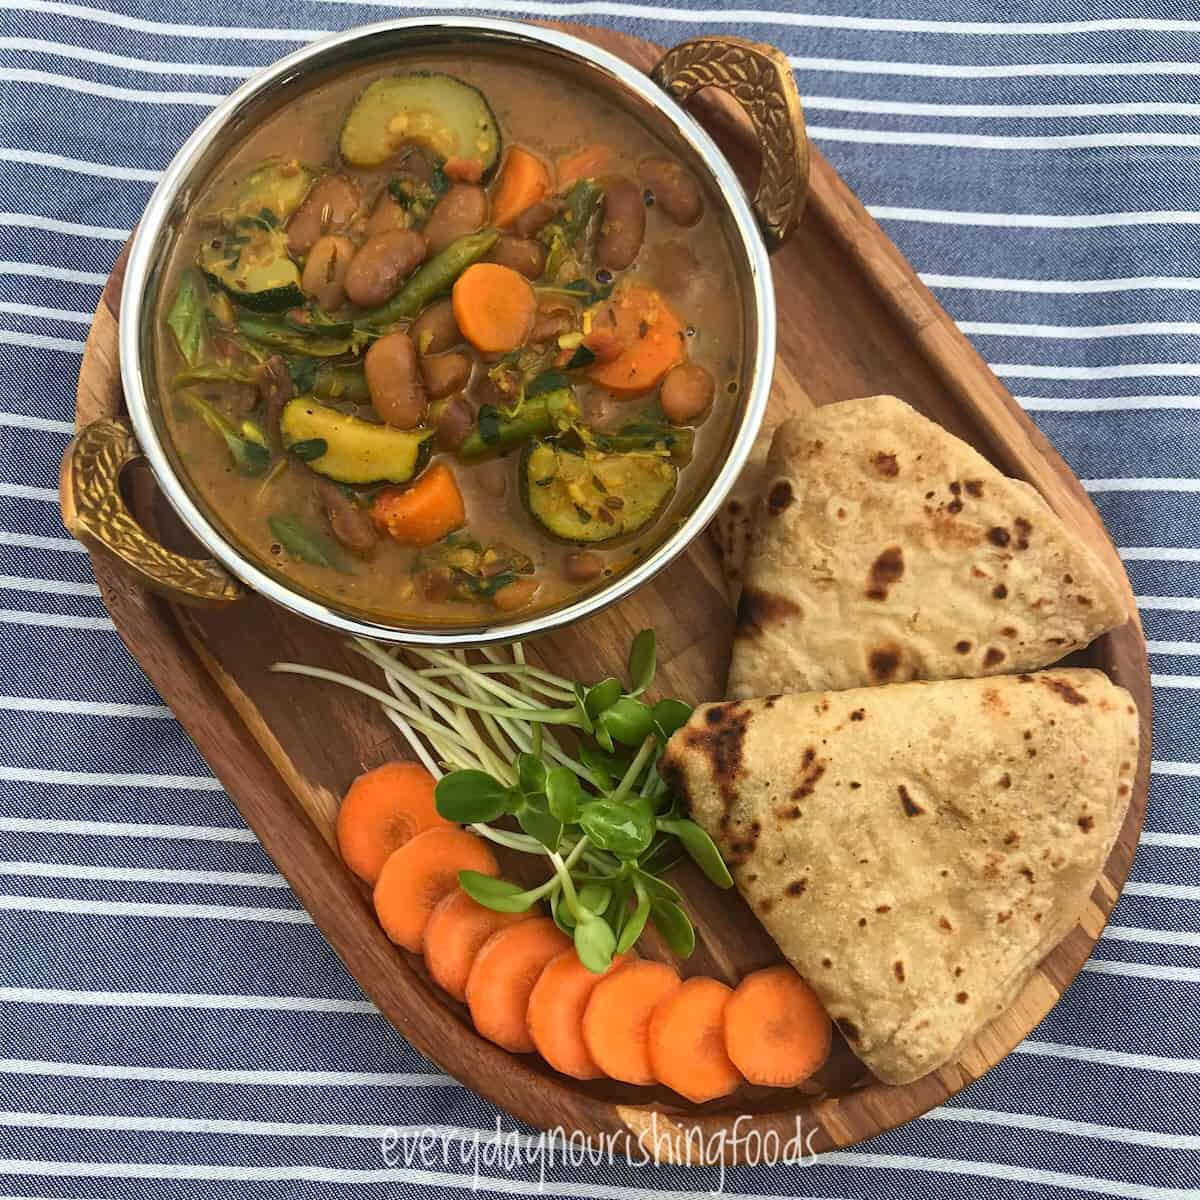 kidney beans curry with salad and whole wheat flatbread in a plate